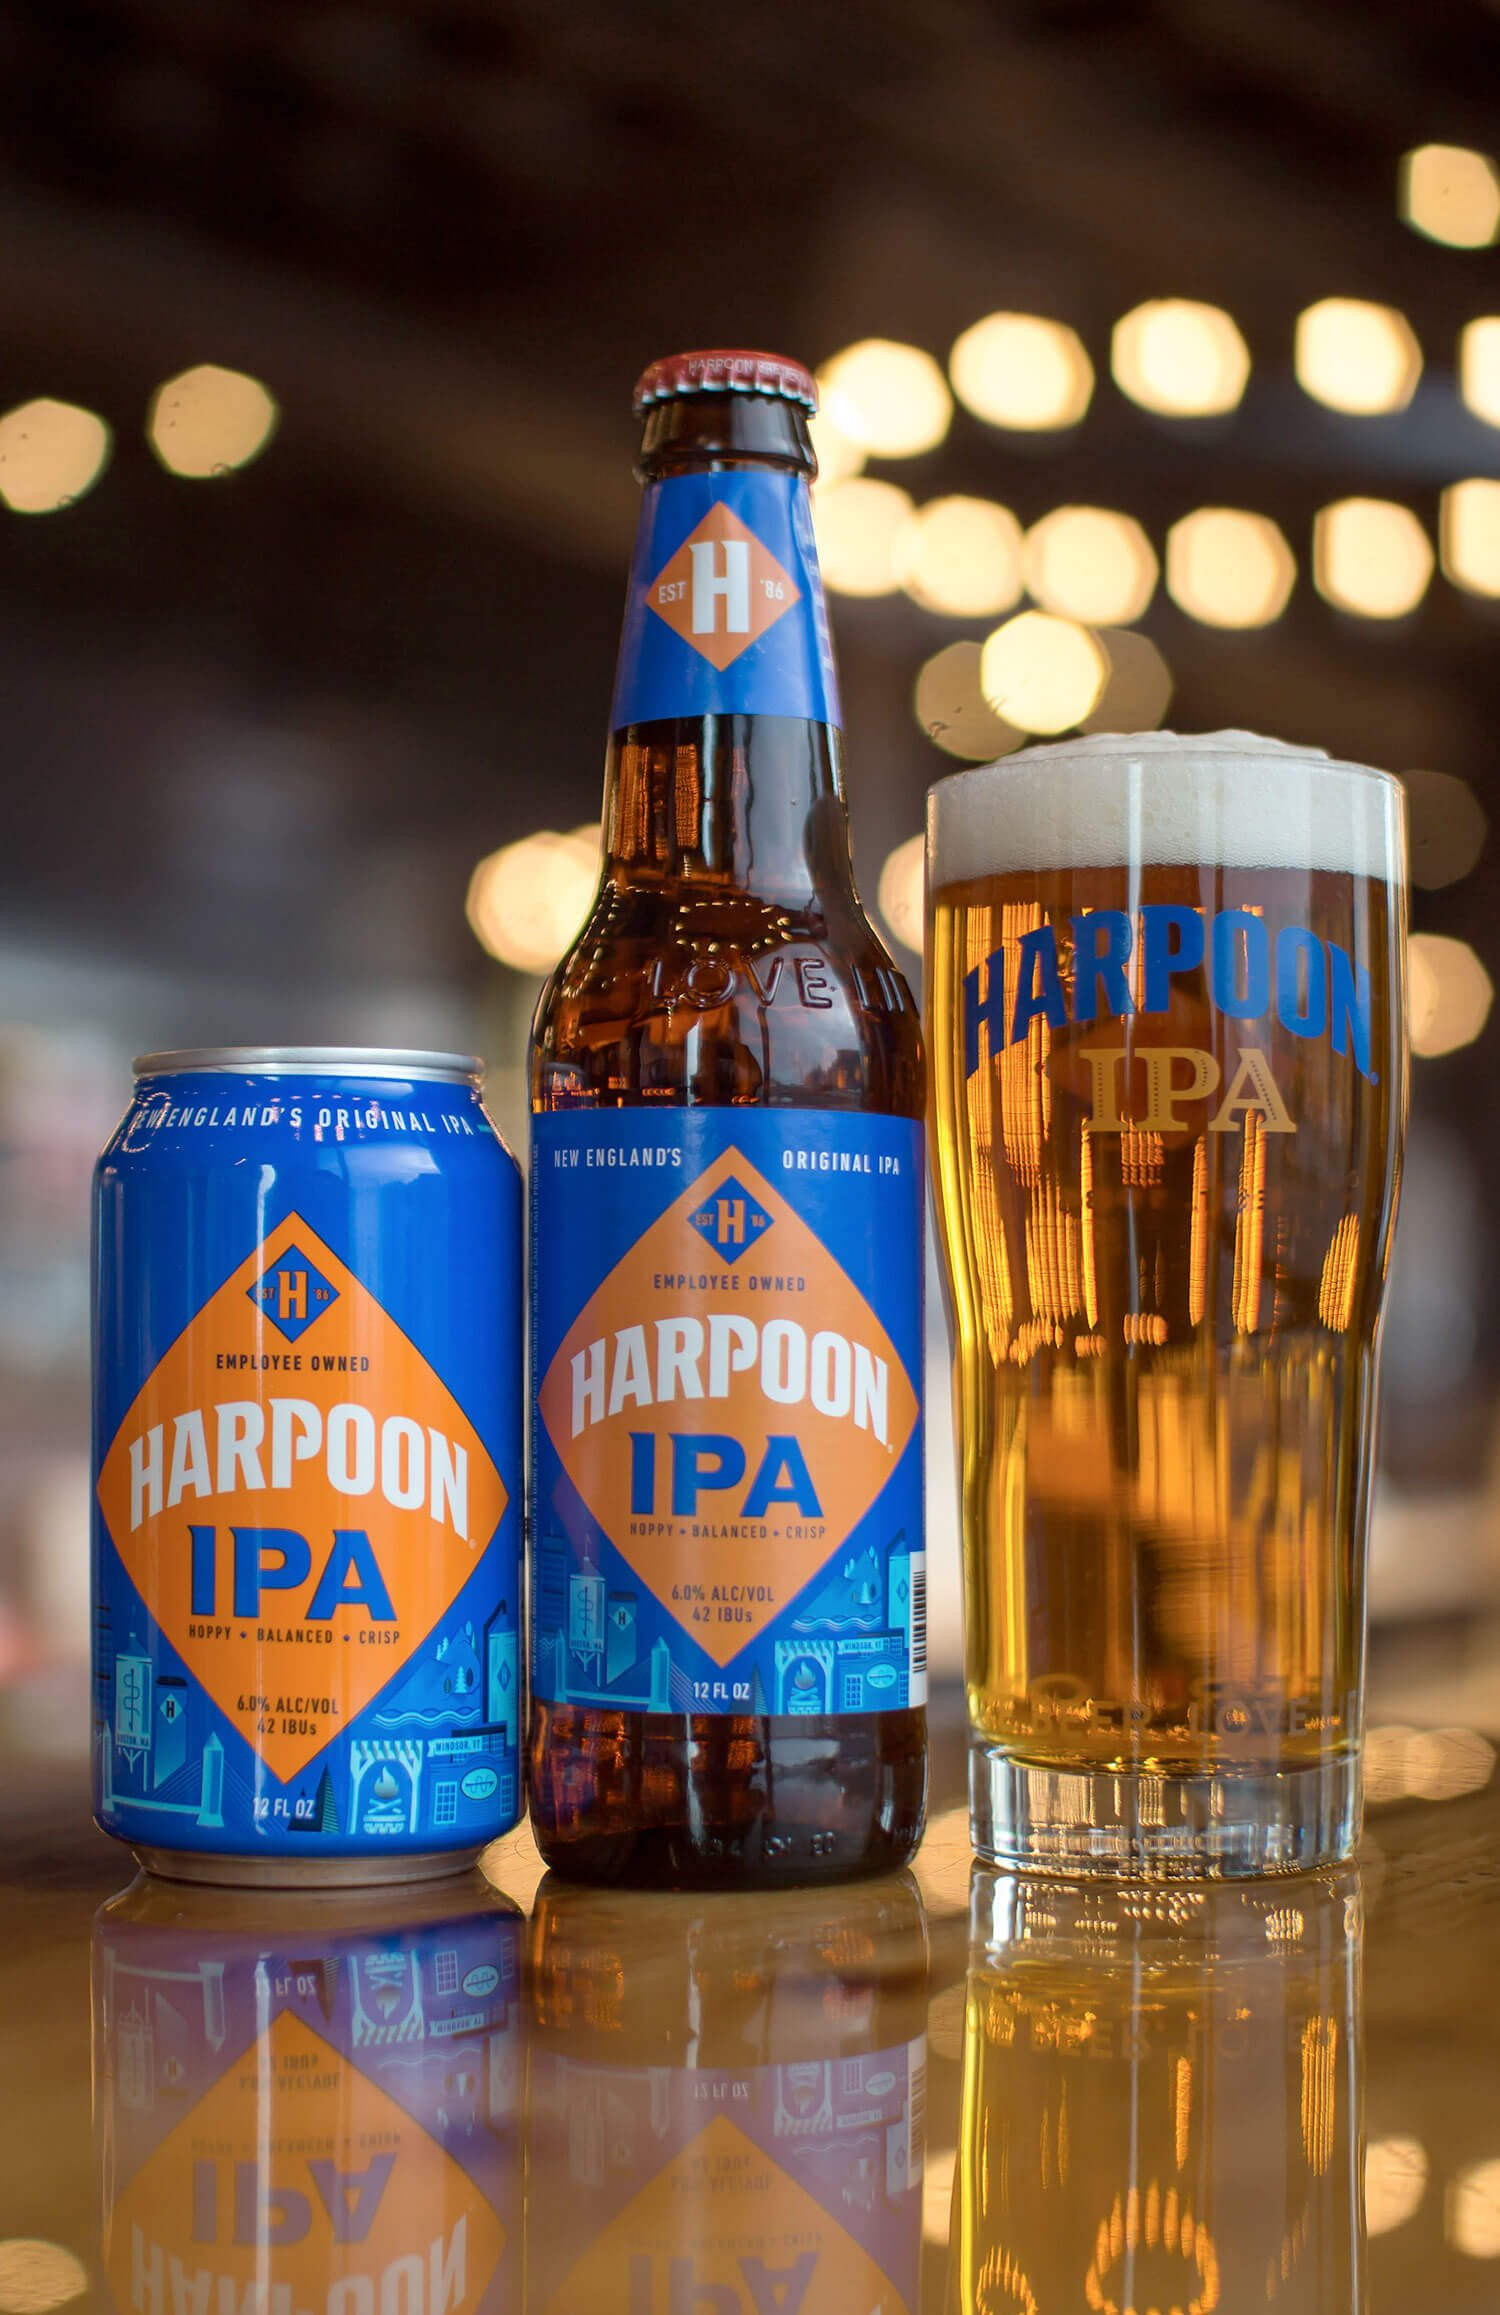 """The revamped packaging makes it loud and clear that Harpoon IPA is proud of its New England roots, while paying tribute to those who have enjoyed it — and helped brew it — for nearly three decades."" — Dan Kenary, CEO of Harpoon Brewery"